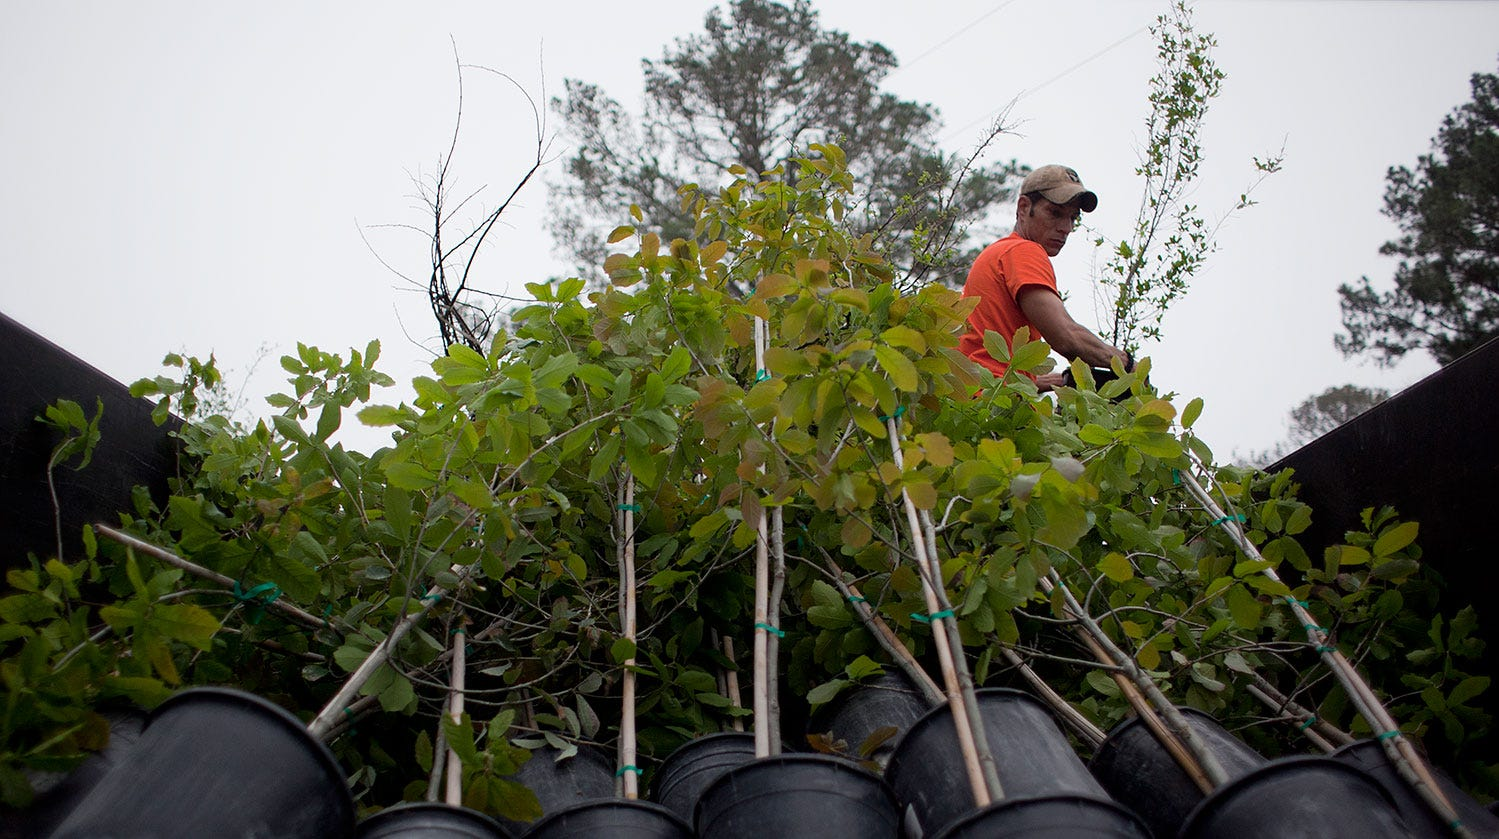 RETREET, a nonprofit that plants trees in communities devastated by natural disaster, turned its attention to Port Aransas, which is still recovering from effects of Hurricane Harvey in August 2017.